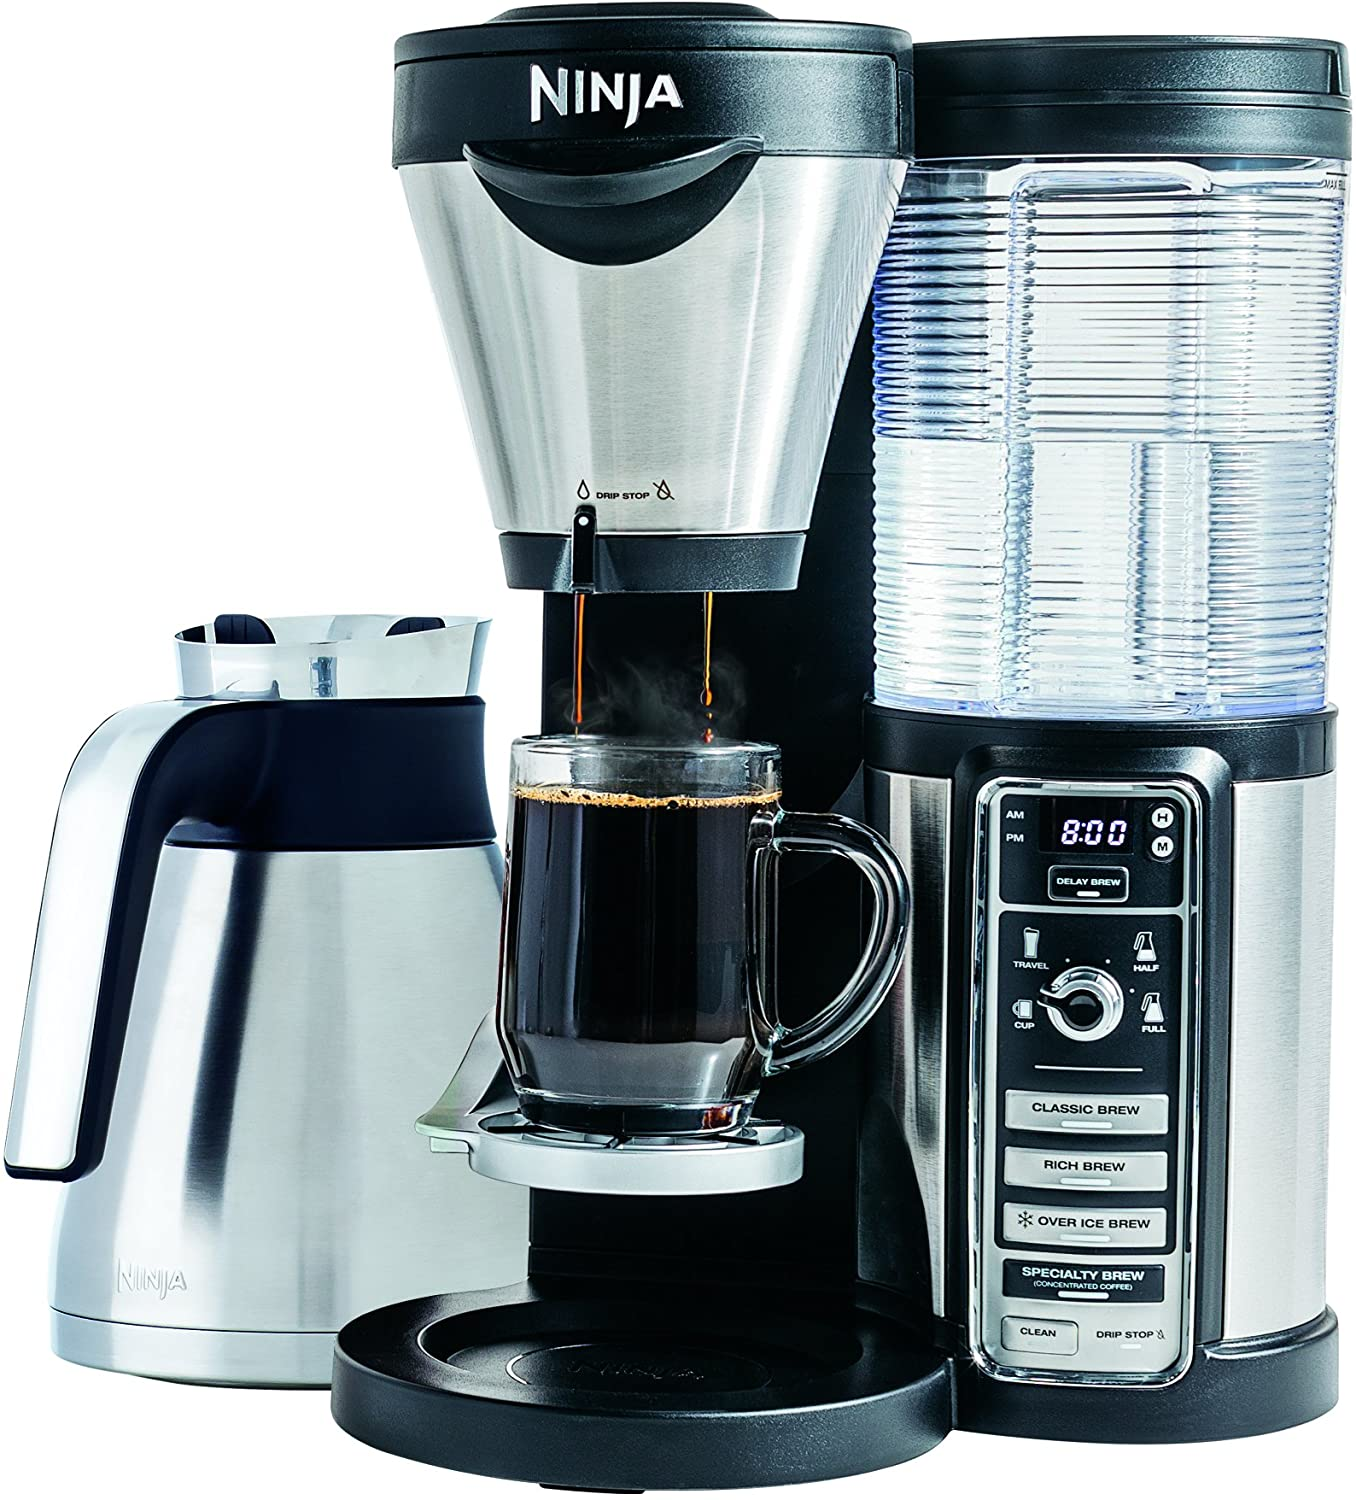 Amazon.com: Ninja Coffee Bar Garrafa para cafetera, Negro ...